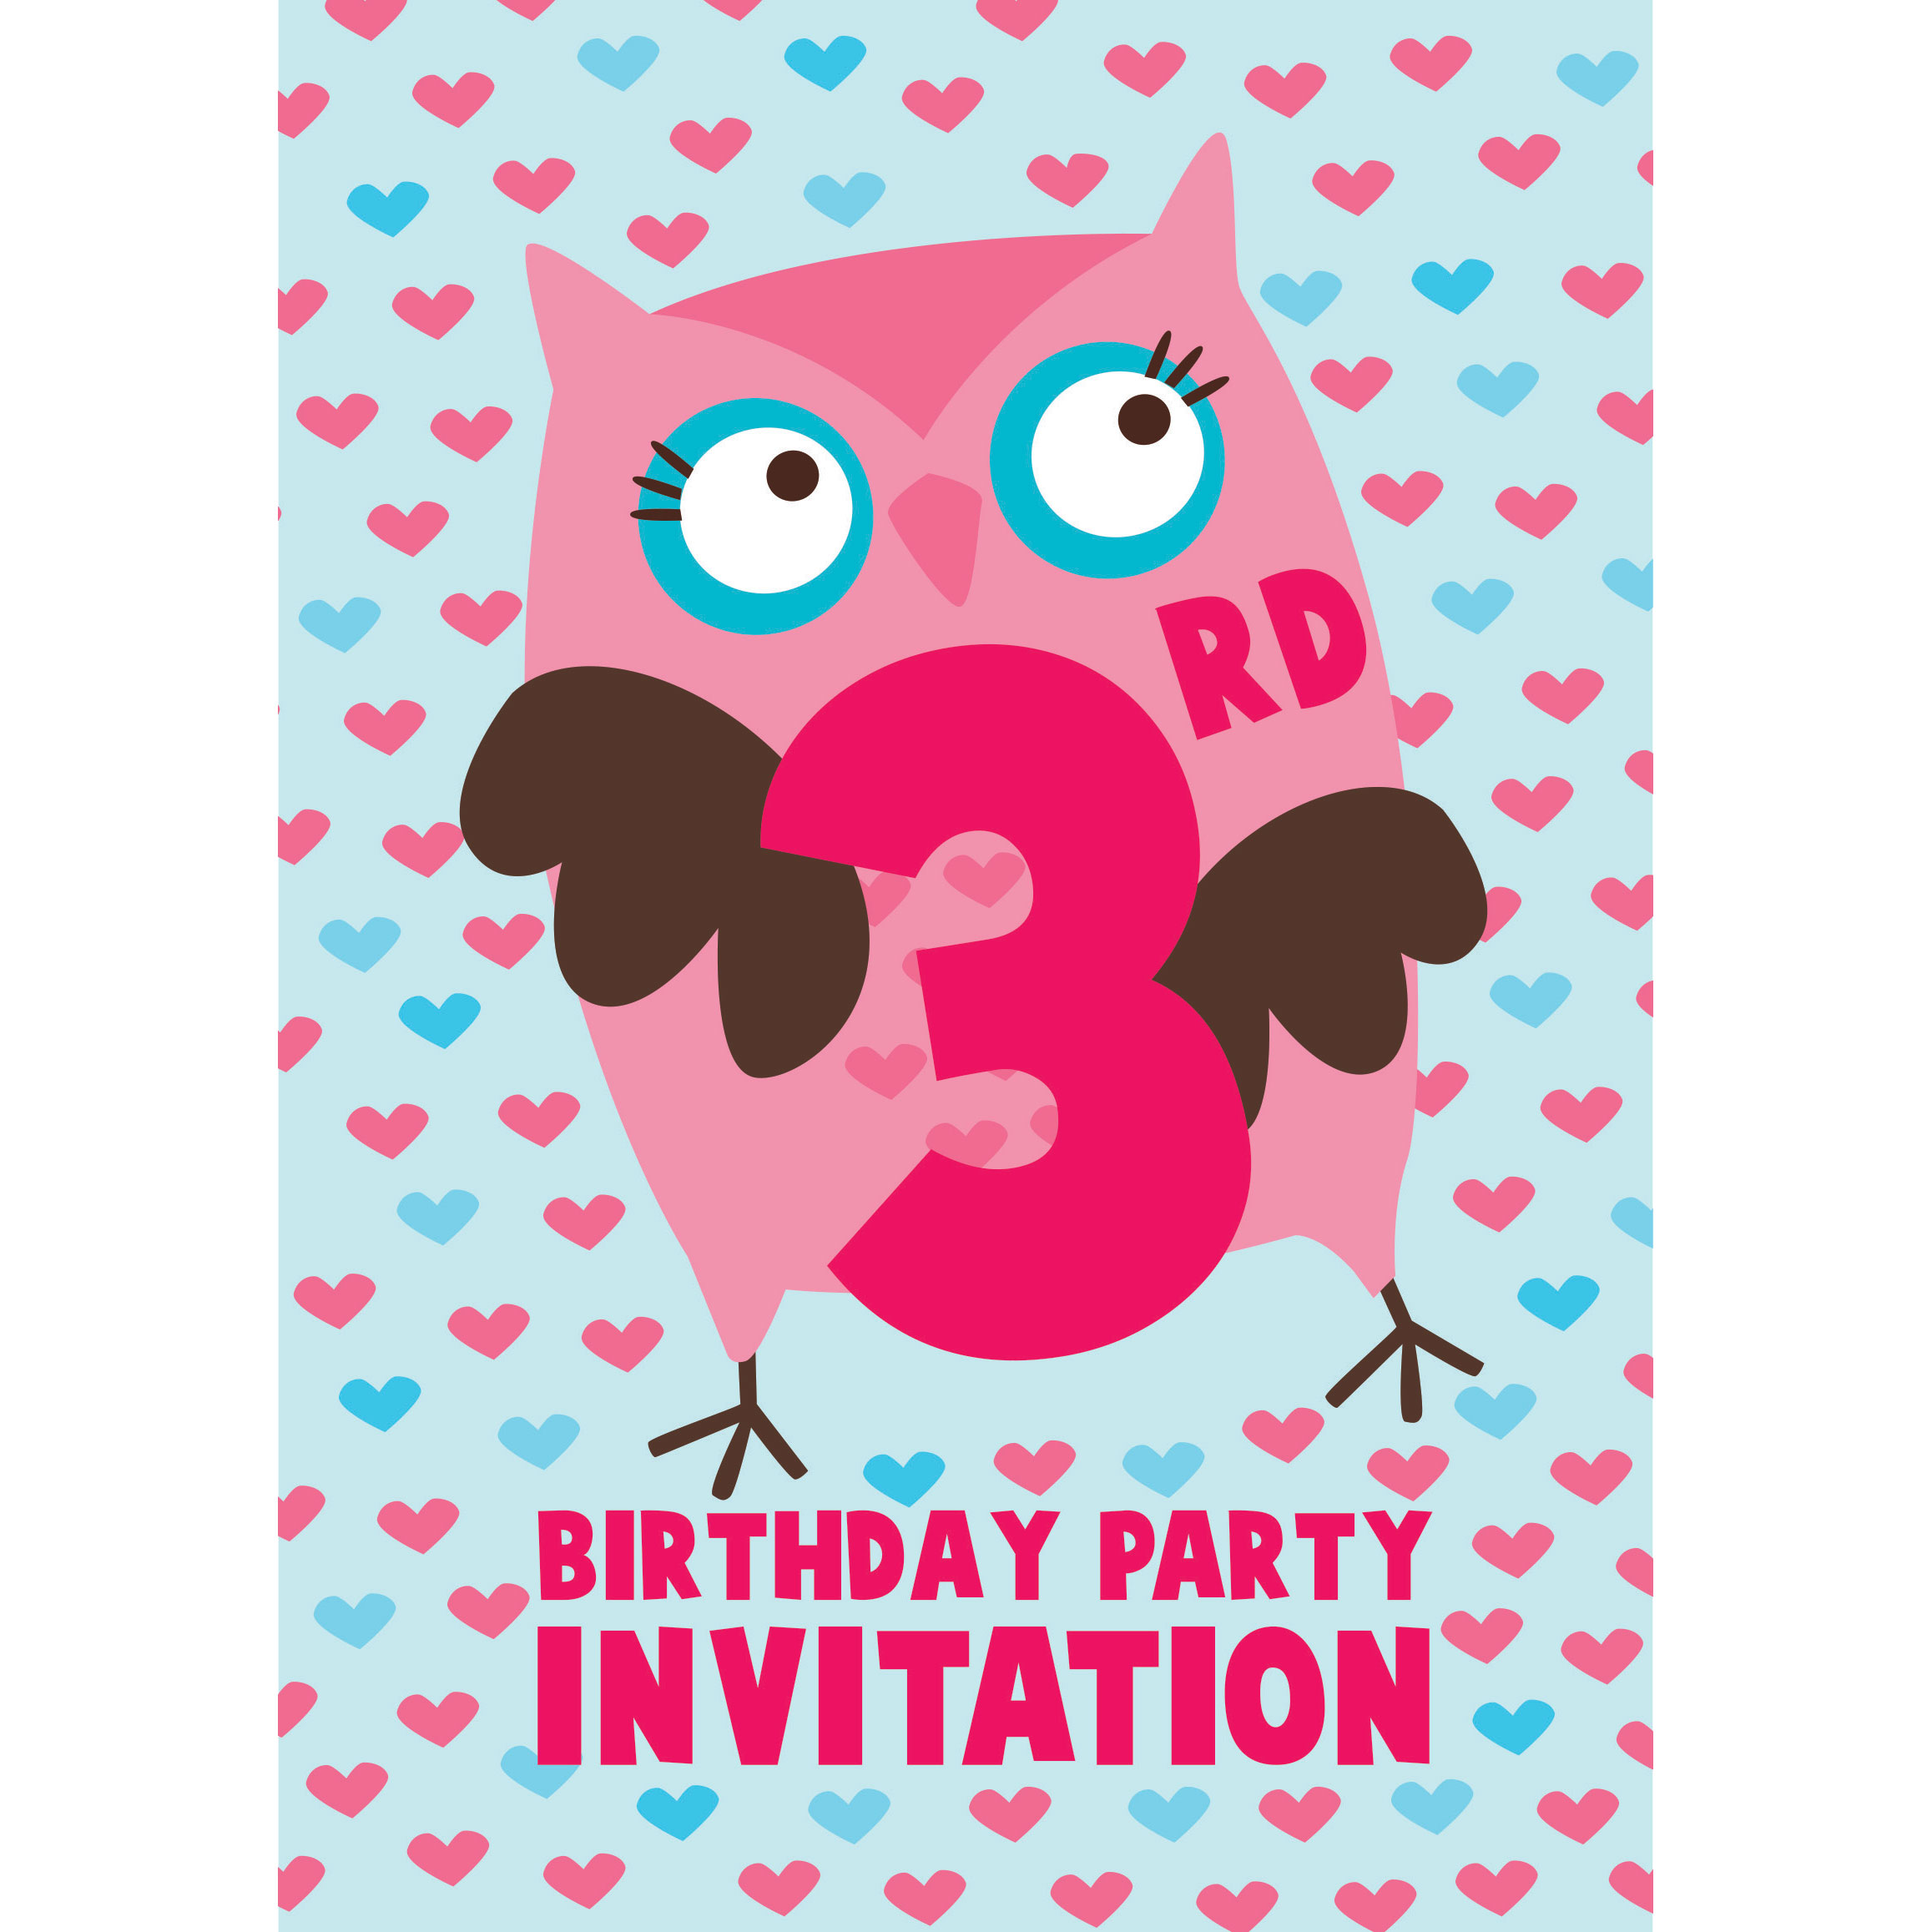 Big happy birthday badges party products party delights - Big Happy Birthday Badges Party Products Party Delights 0